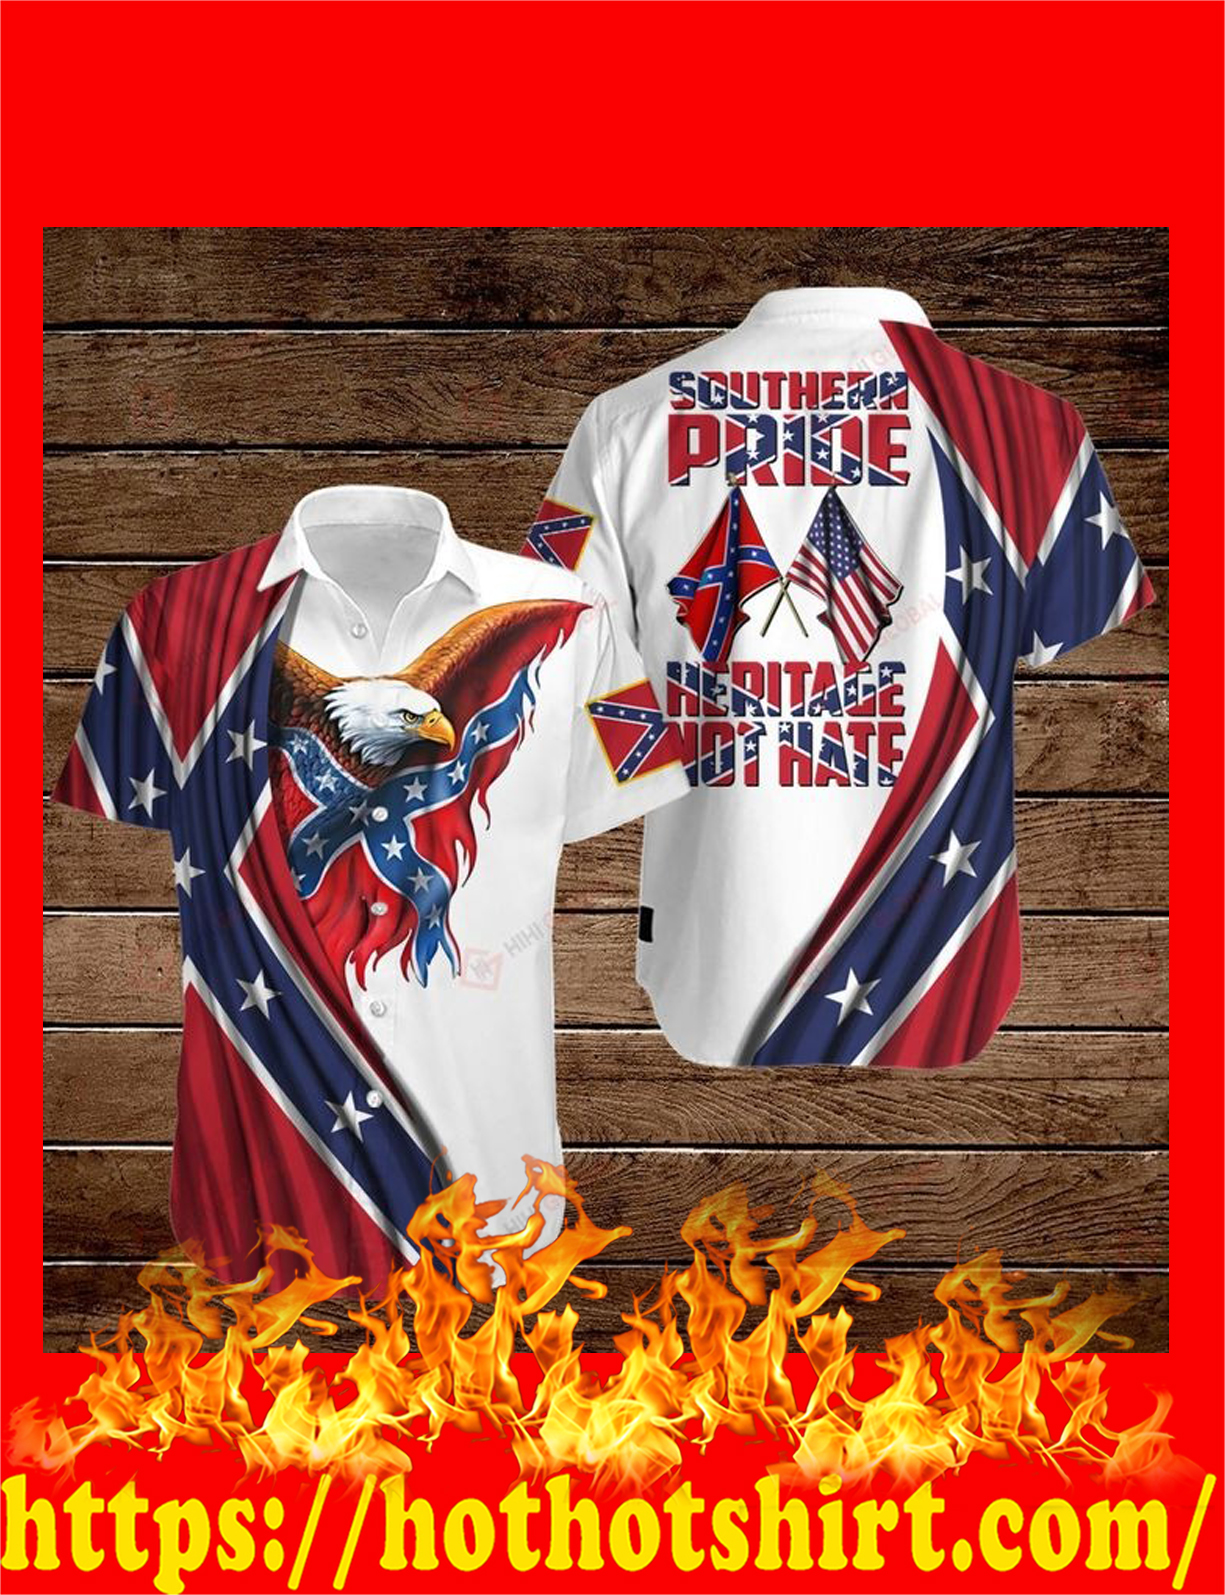 Confederate flag southern pride heritage not hate hawaiian shirt